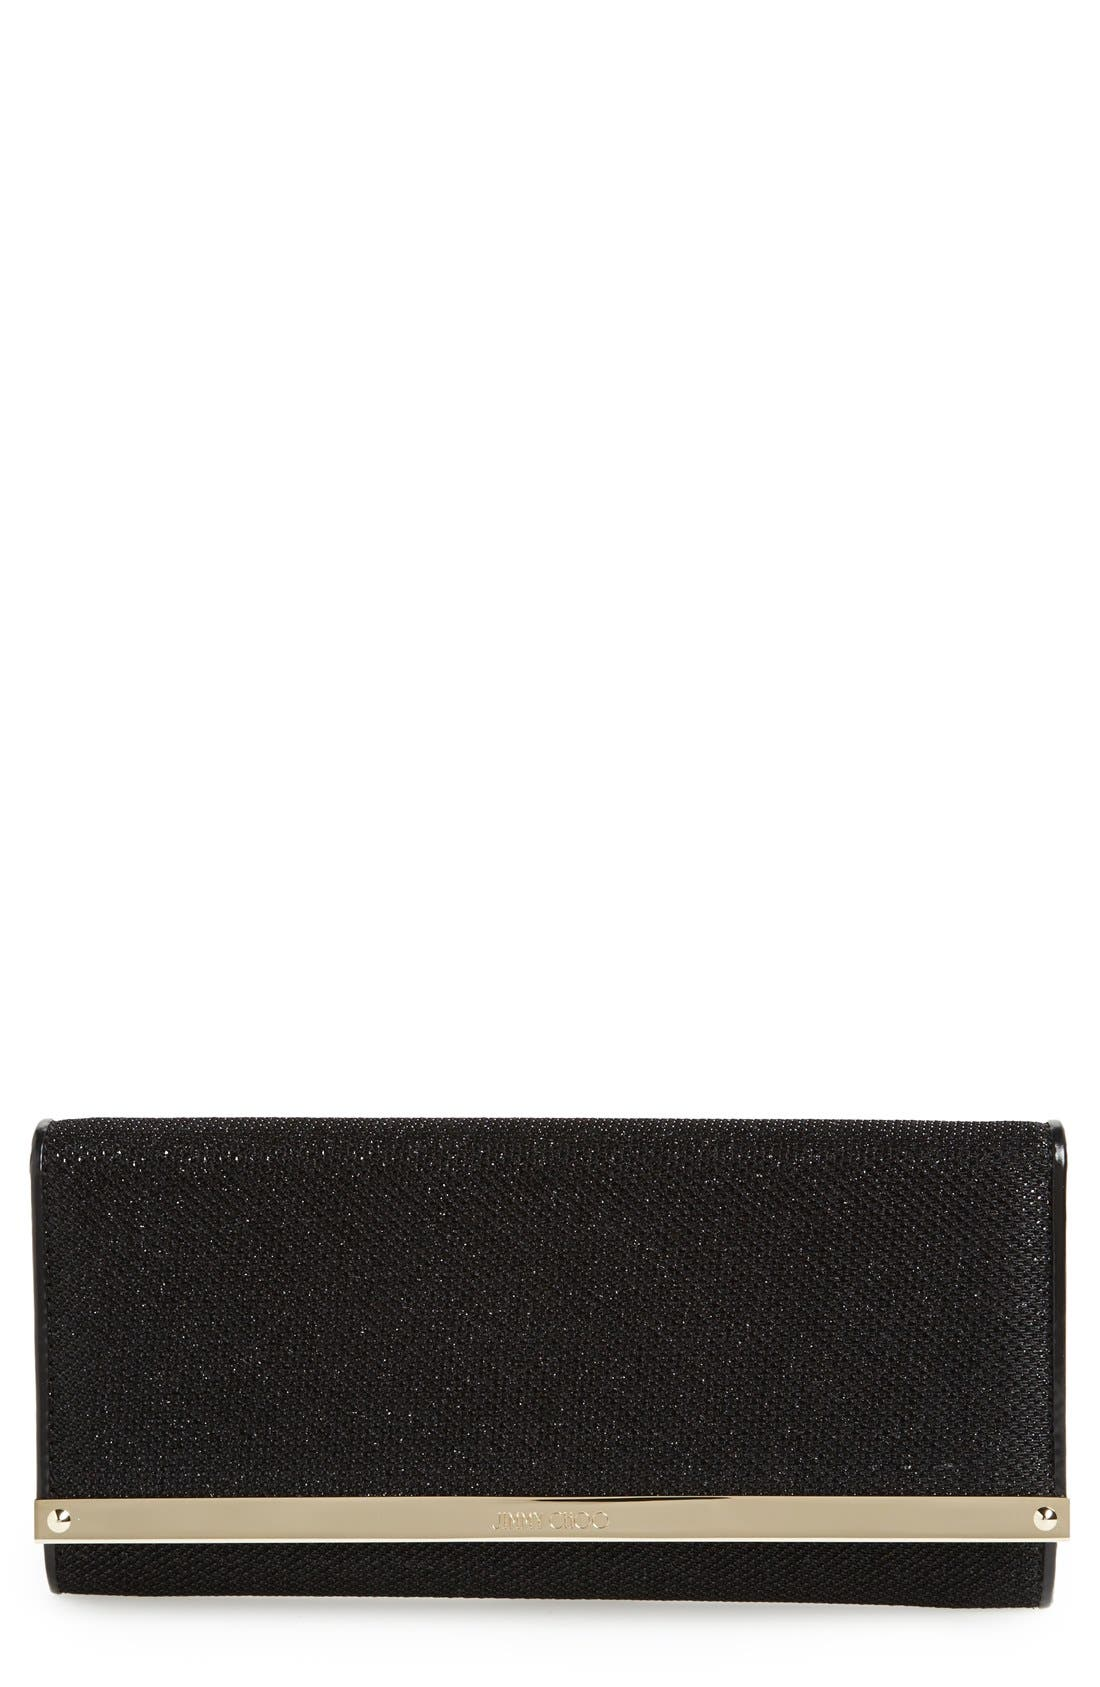 Alternate Image 1 Selected - Jimmy Choo 'Milla' Glitter Lamé Wallet on a Chain